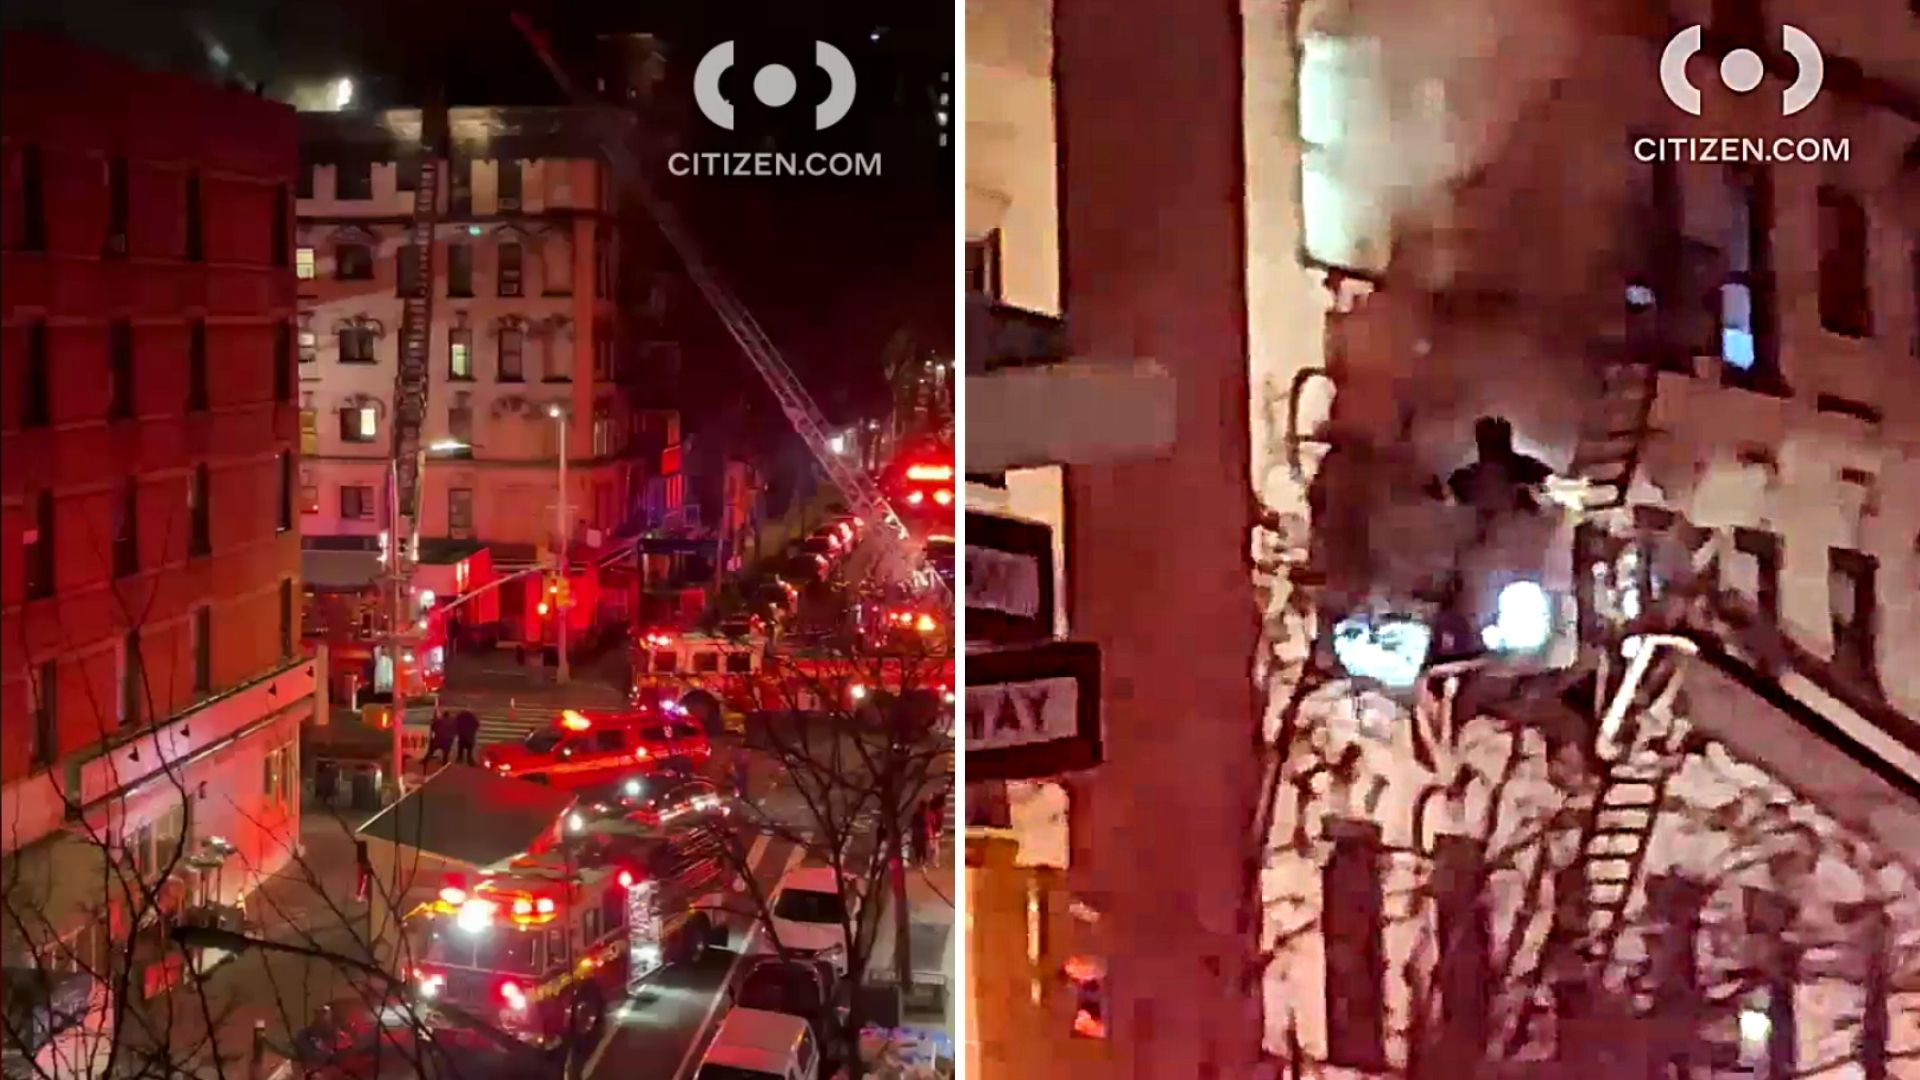 Firefighters respond to fire in an Upper East Side apartment near East 78th Street and Second Avenue that left three injured early Tuesday, March 16, 2021, according to the FDNY. (Citizen App)